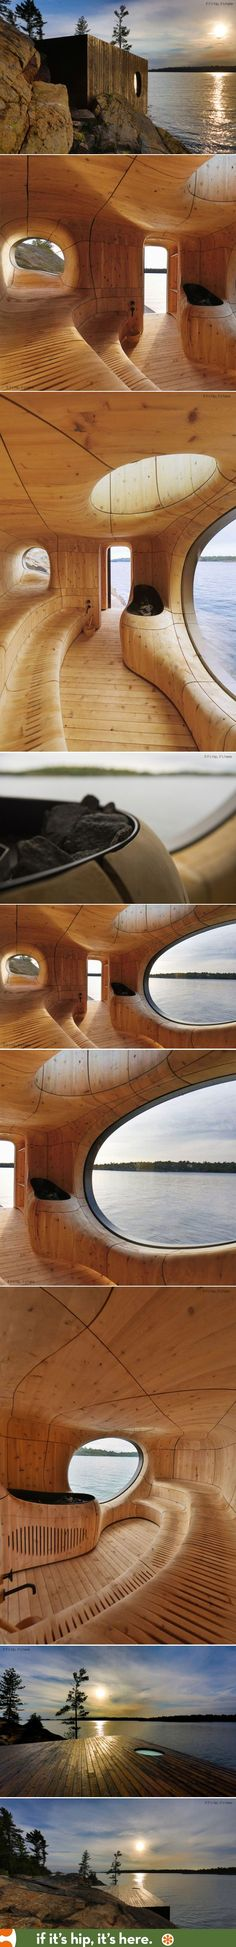 The Grotto Sauna is a prefab sauna designed and fabricated using the latest 3D technology. | http://www.ifitshipitshere.com/grotto-sauna-amporphic-prefab-edge-private-island/ Maybe something for 3D Printer Chat?